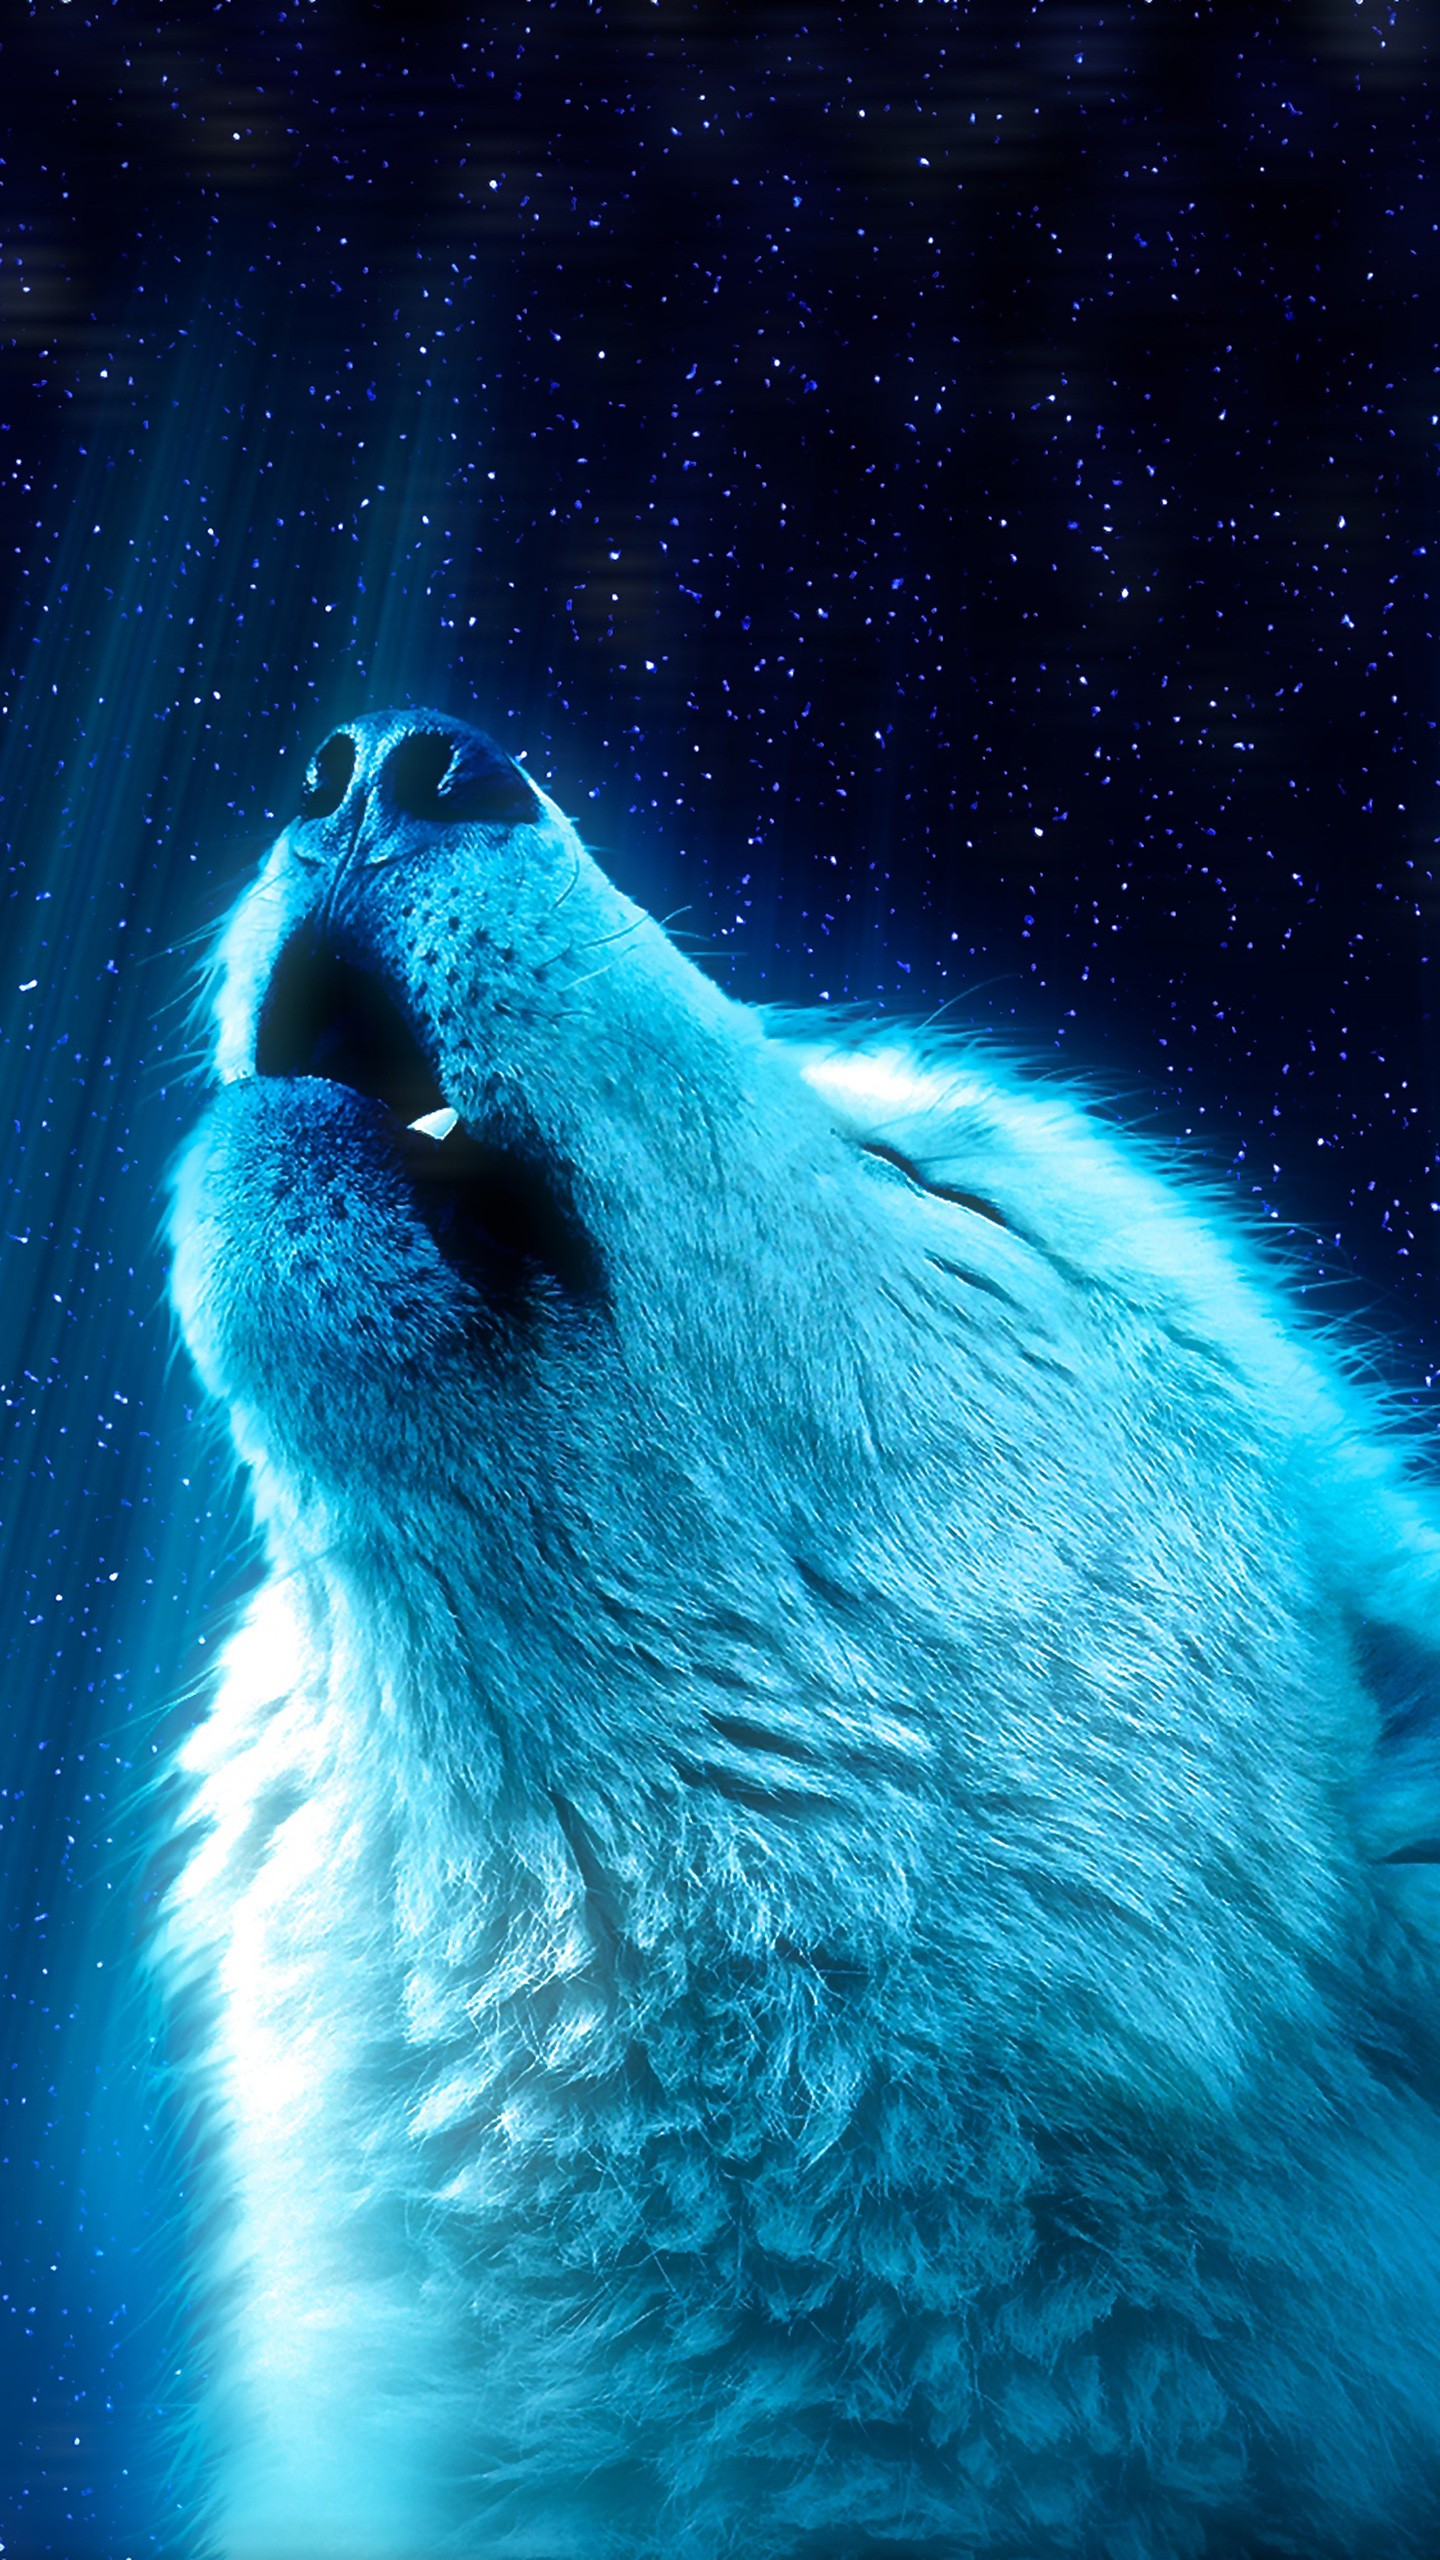 Wolf Wallpaper 8k Phone - 1440x2560 ...